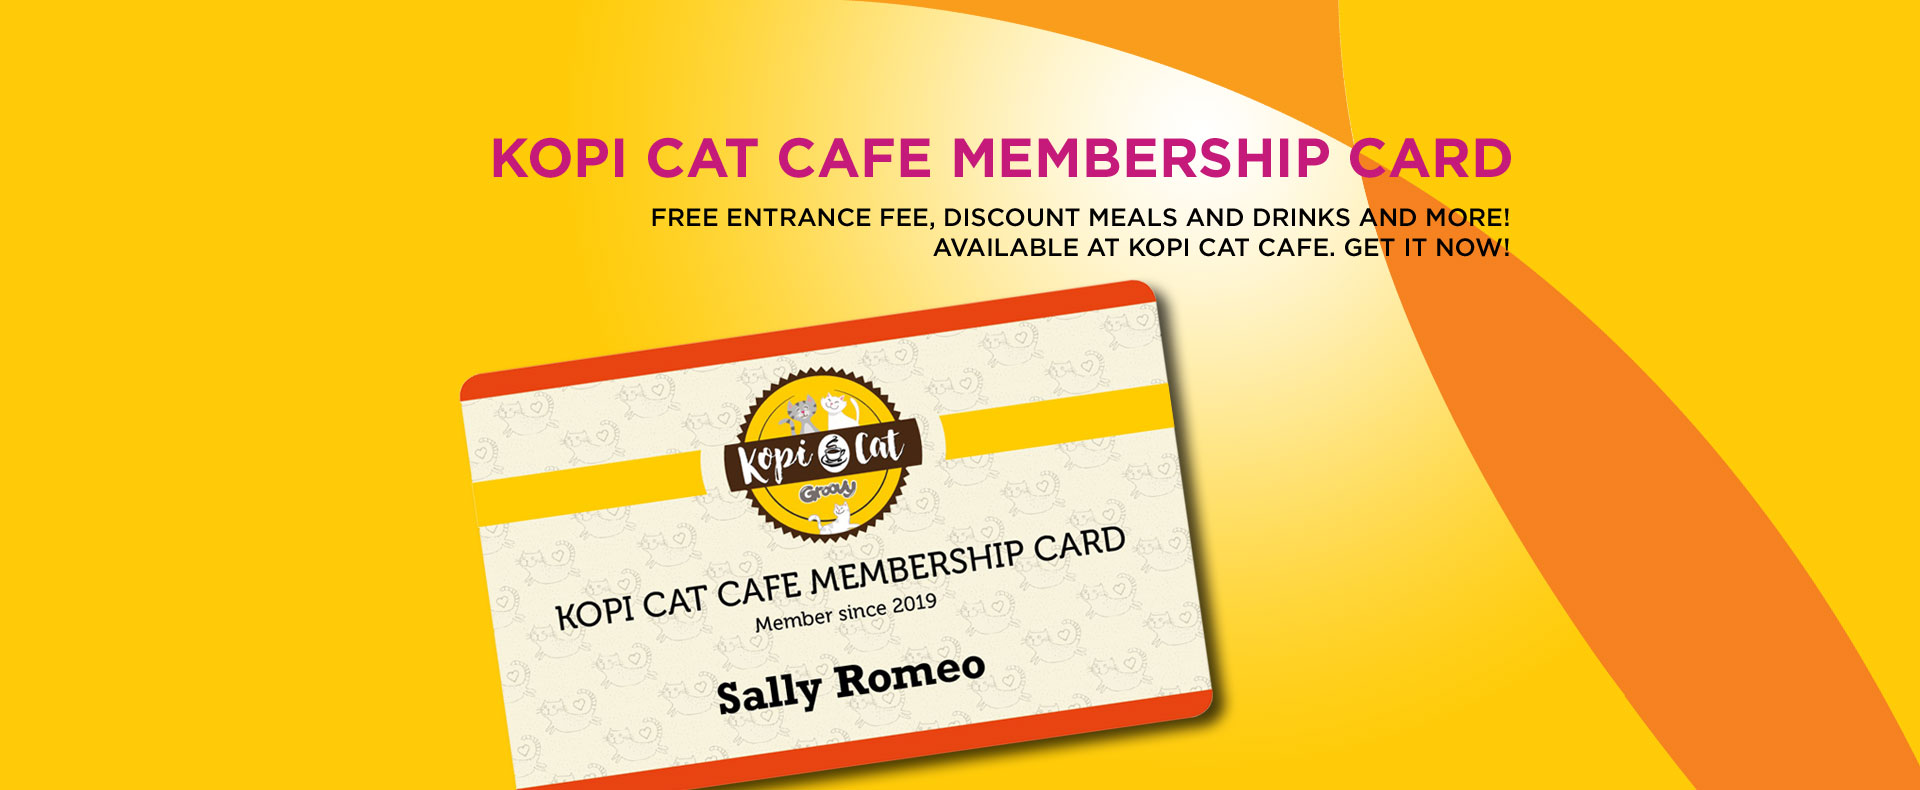 Kopi Cat Cafe Membership Card